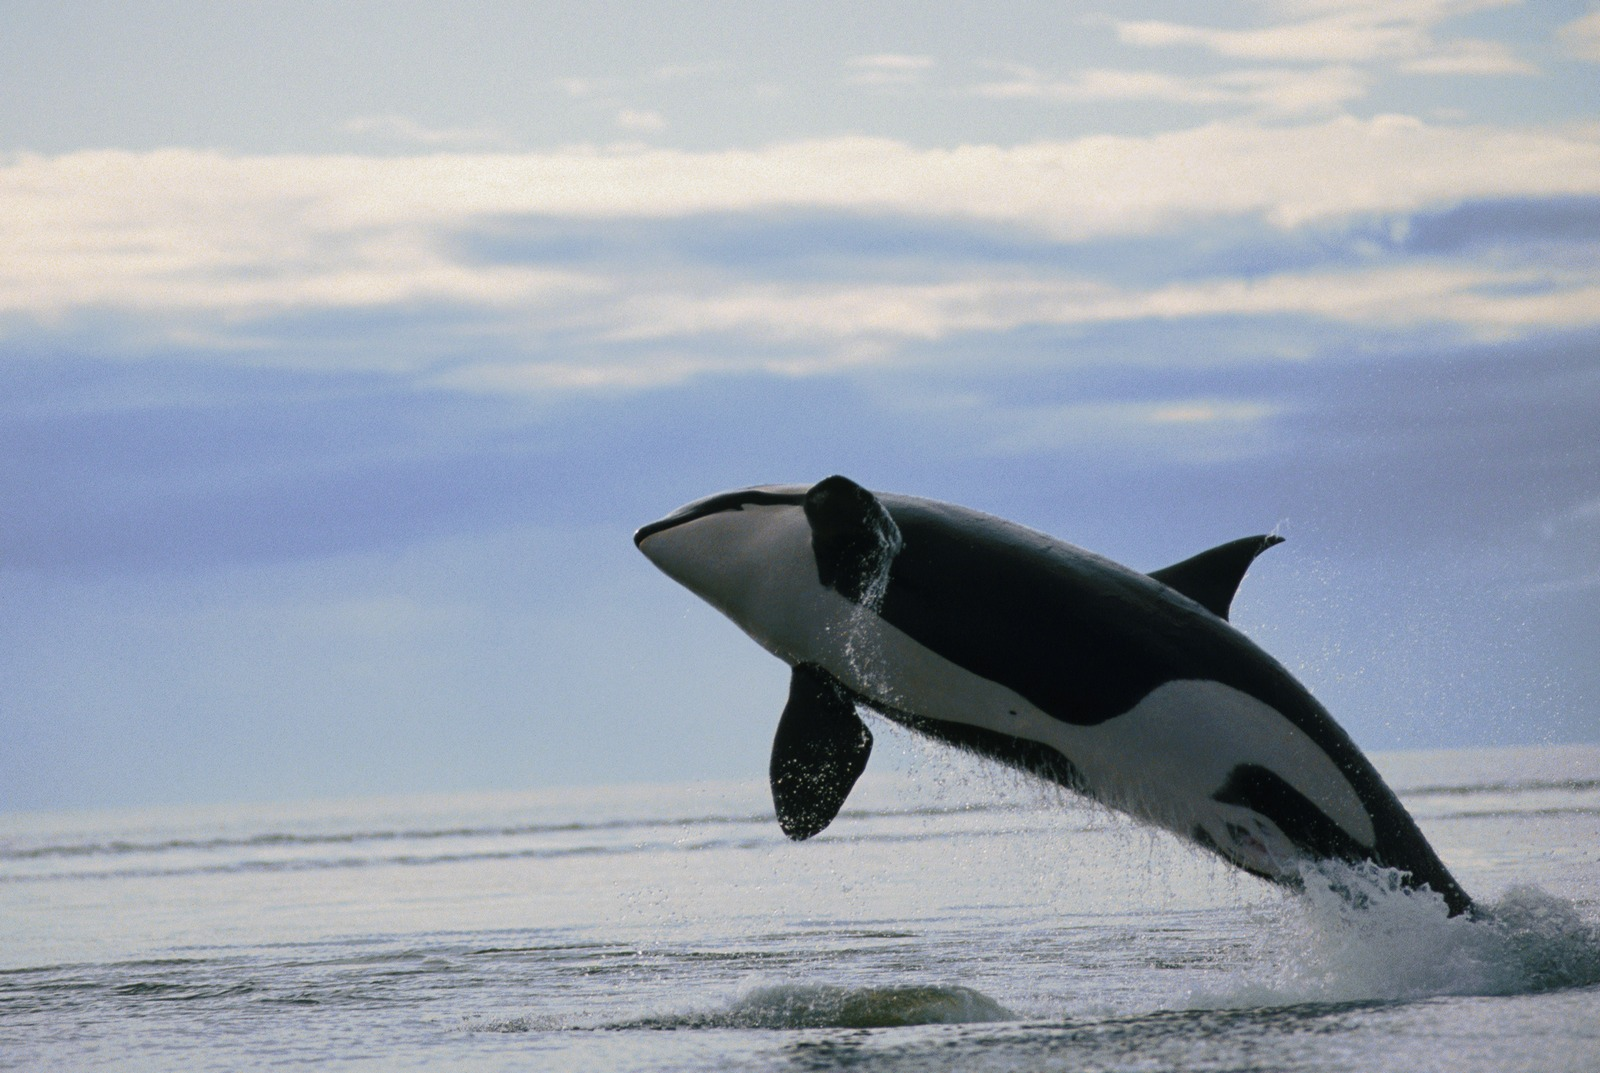 Malignant Sharks and Killer Whales | My image